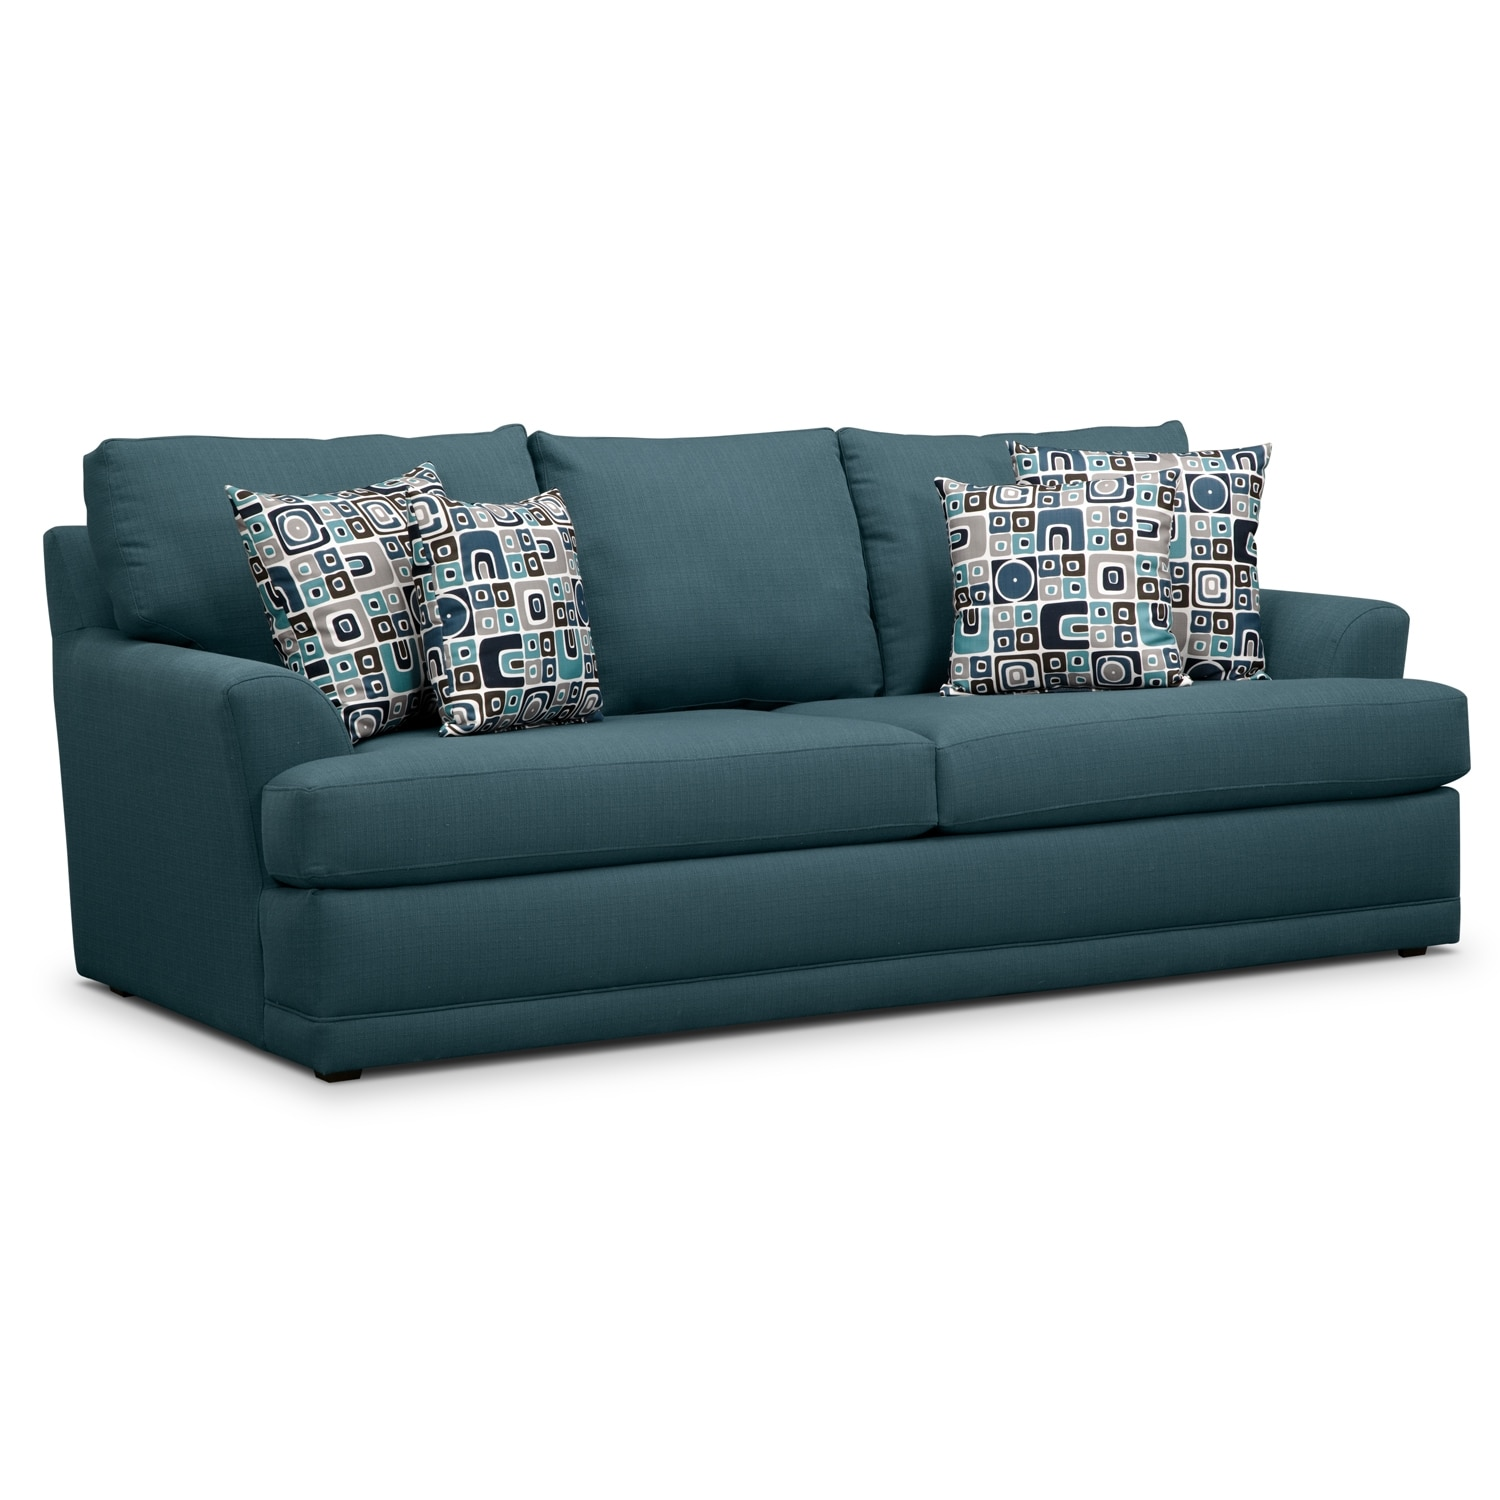 calamar teal upholstery queen memory foam sleeper sofa. Black Bedroom Furniture Sets. Home Design Ideas